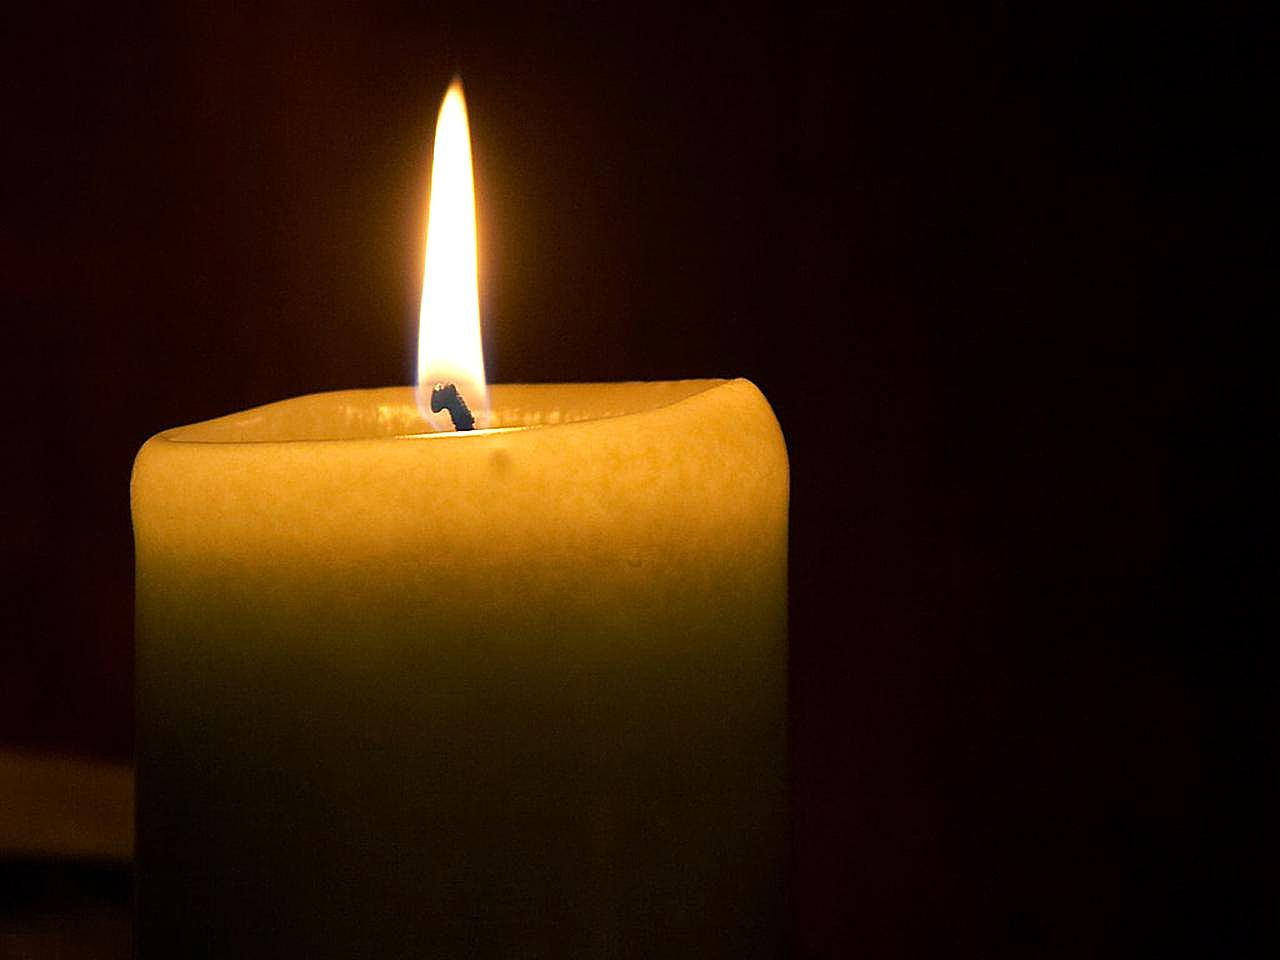 light a prayer candle for you and pray for your intentions